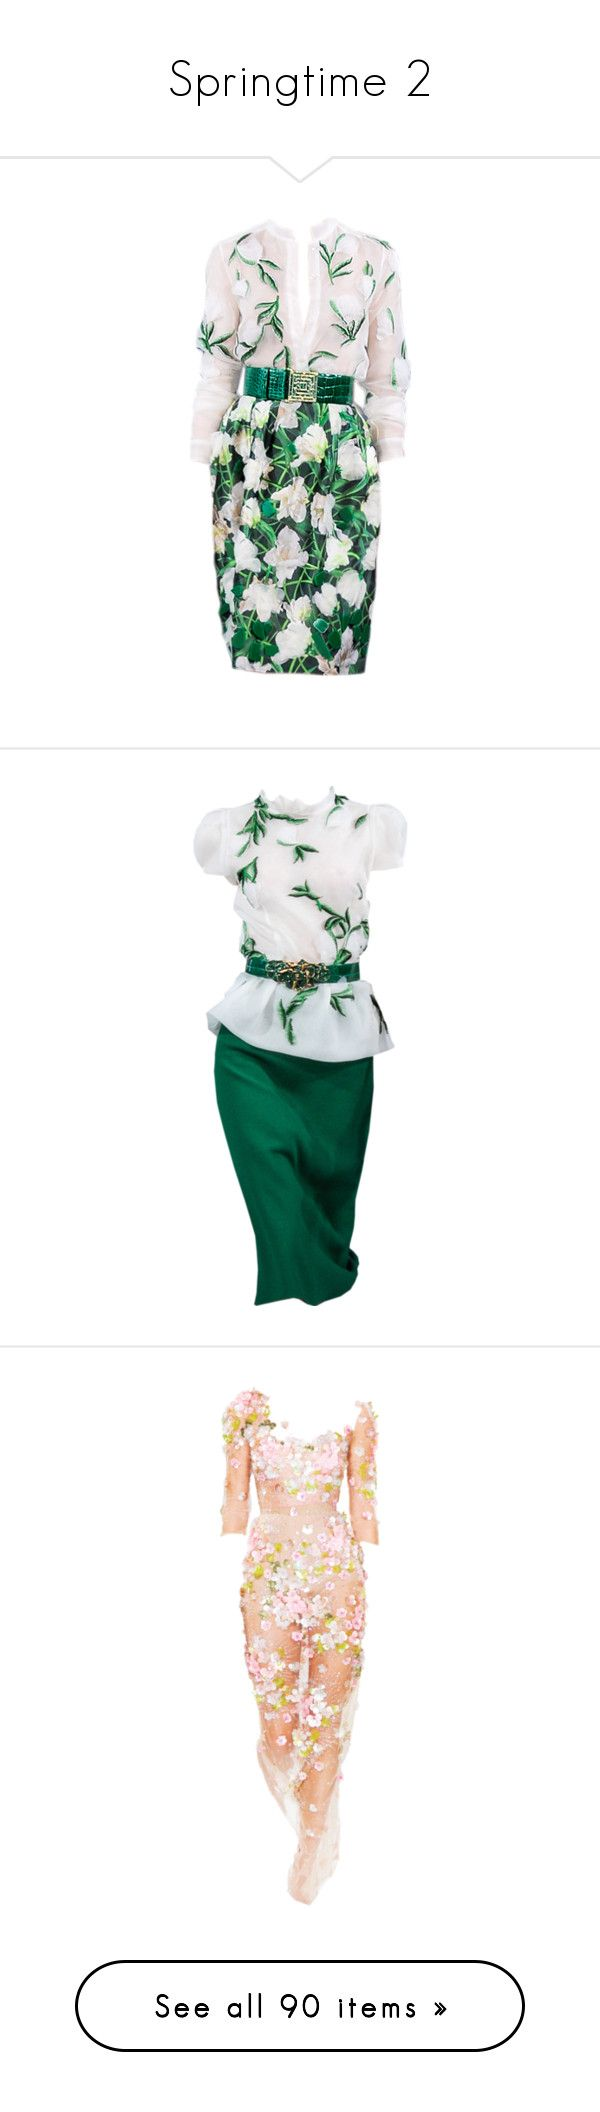 """""""Springtime 2"""" by nataliemcmahan ❤ liked on Polyvore featuring dresses, vestidos, gowns, satinee, green color dress, green dress, short dresses, short green dress, green mini dress and dolls"""